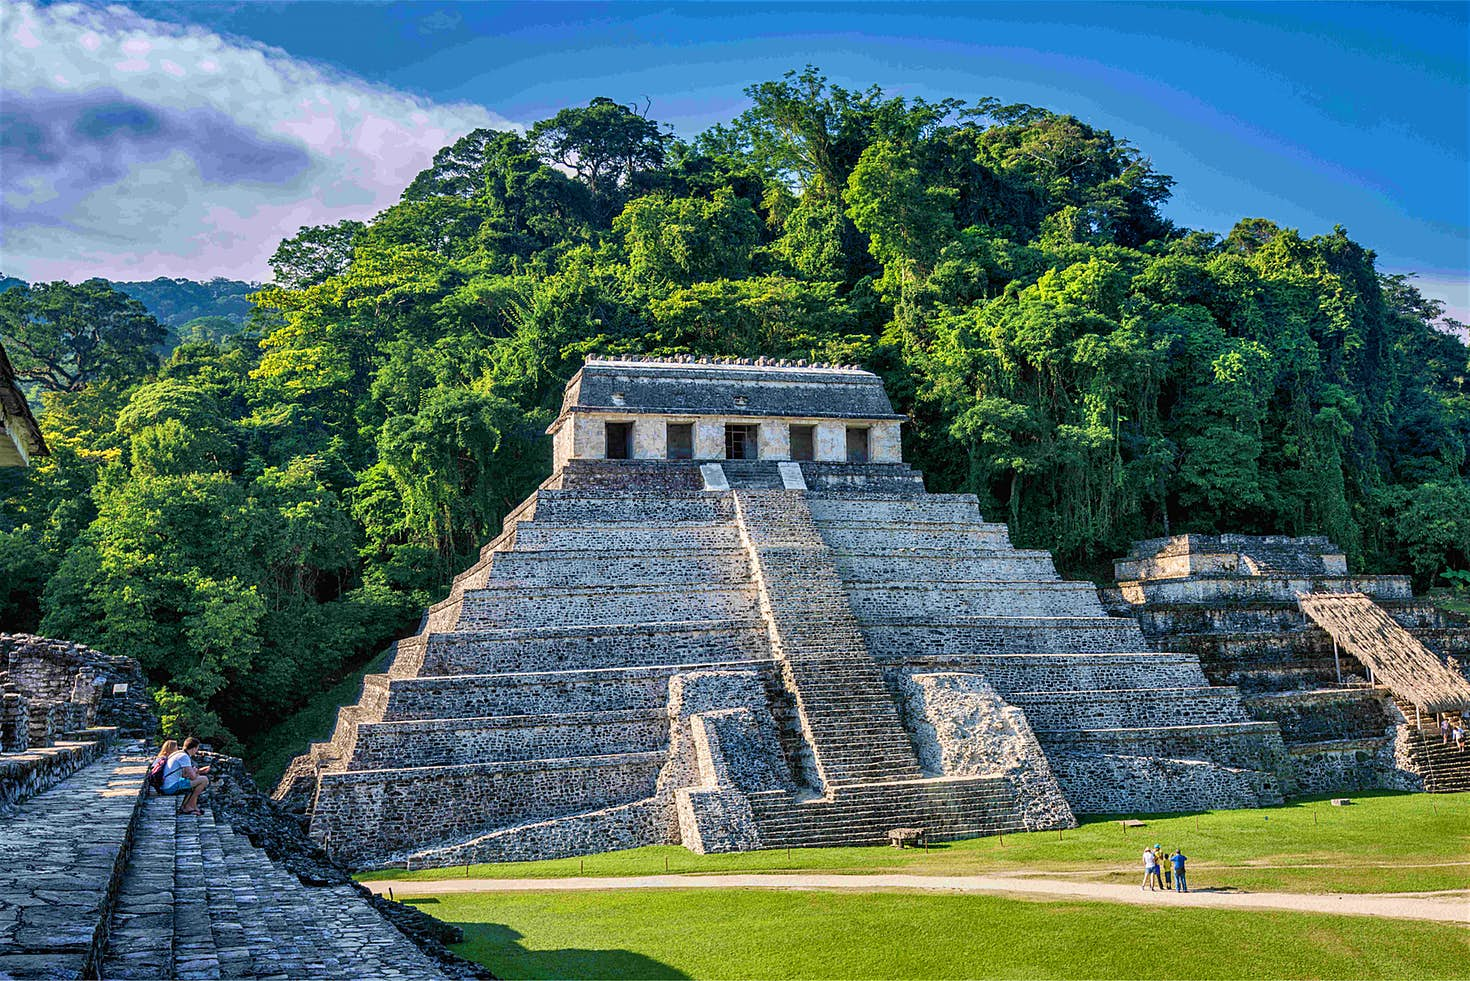 Best of Chiapas: Colonial cities, jungle-clad ruins, refreshing swims MexVax mexican hotels and resorts